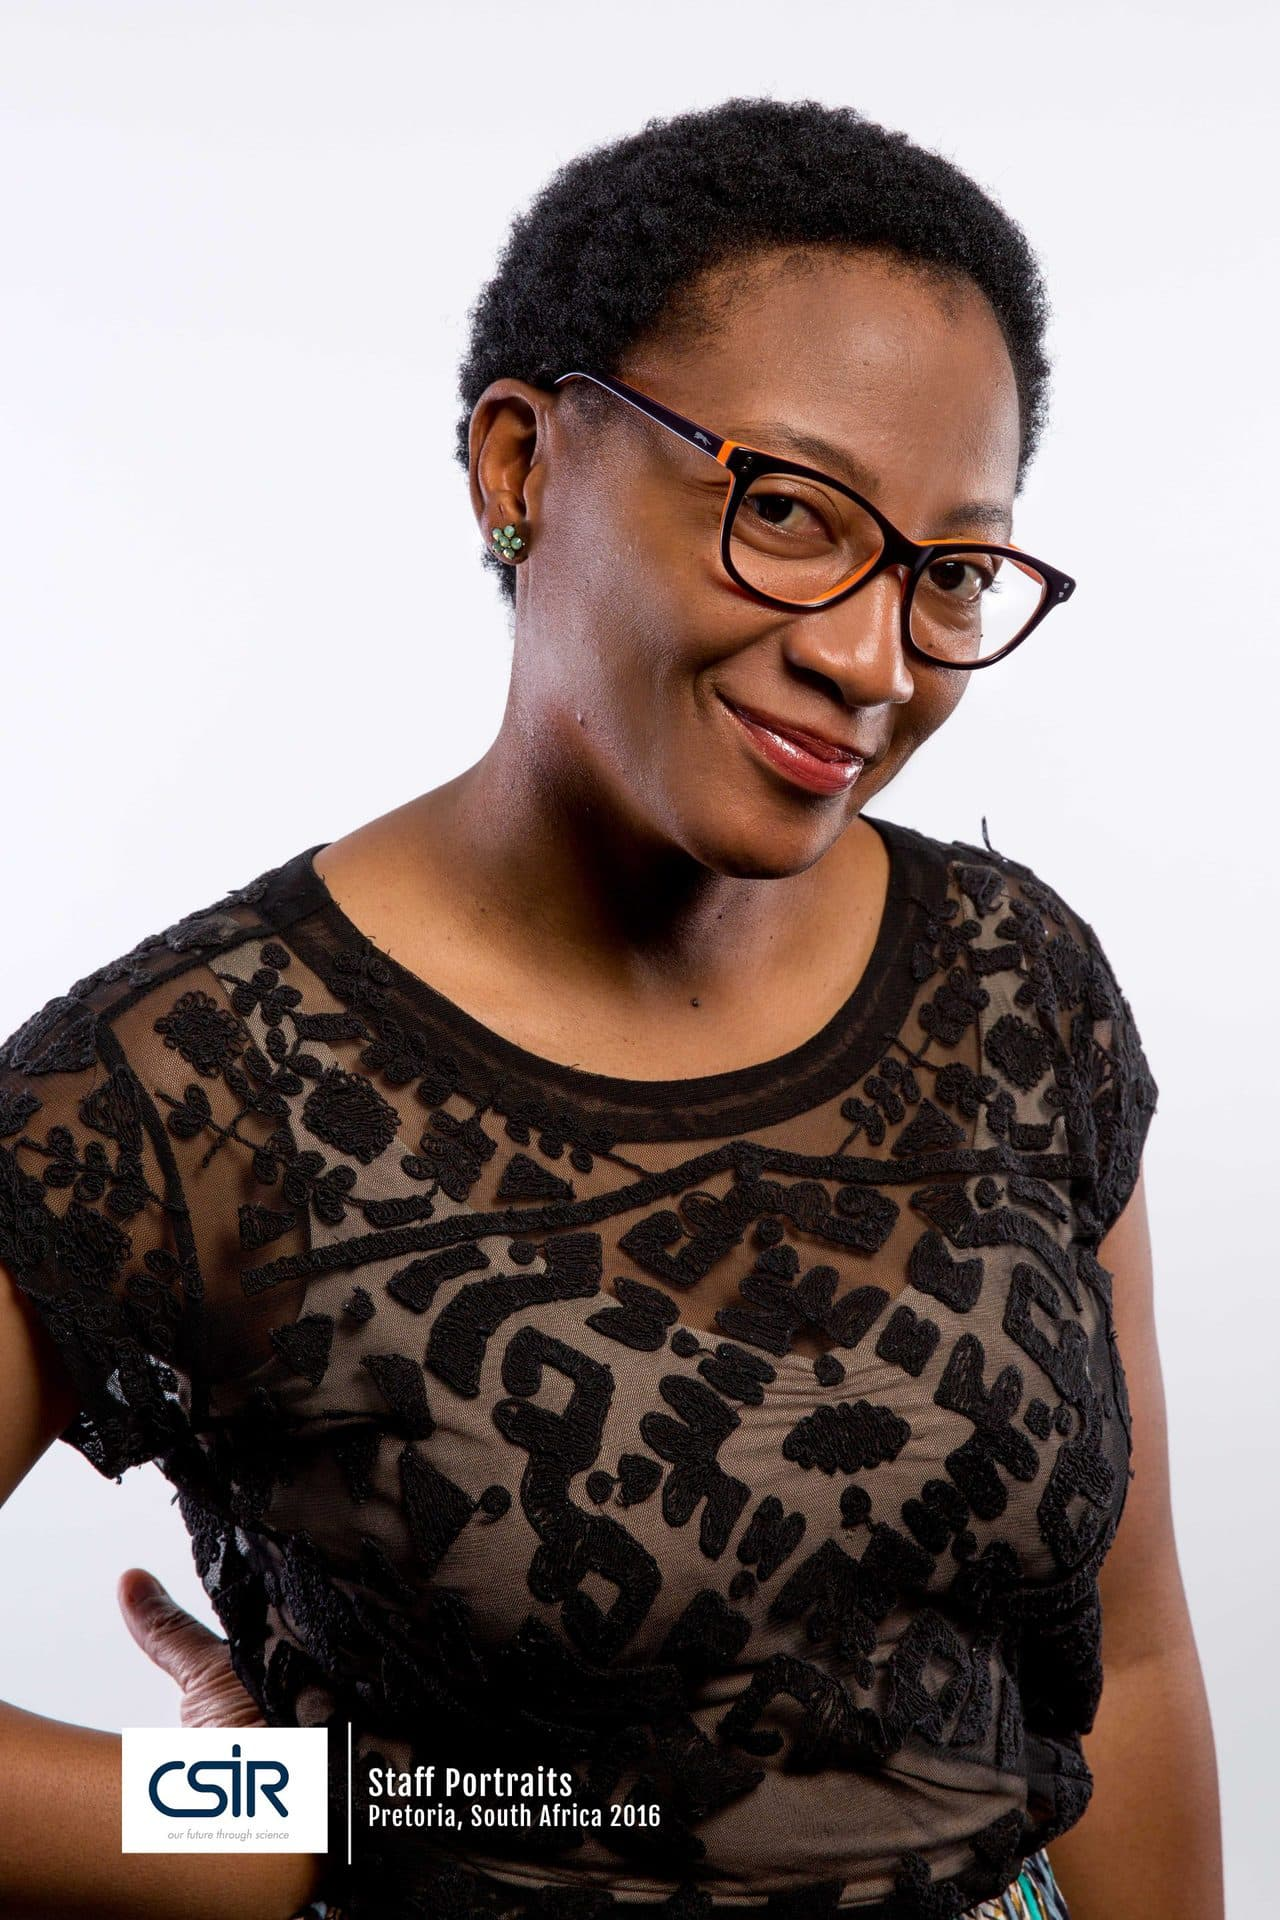 Portraits of  CSIR Staff - Black women with glasses and black top